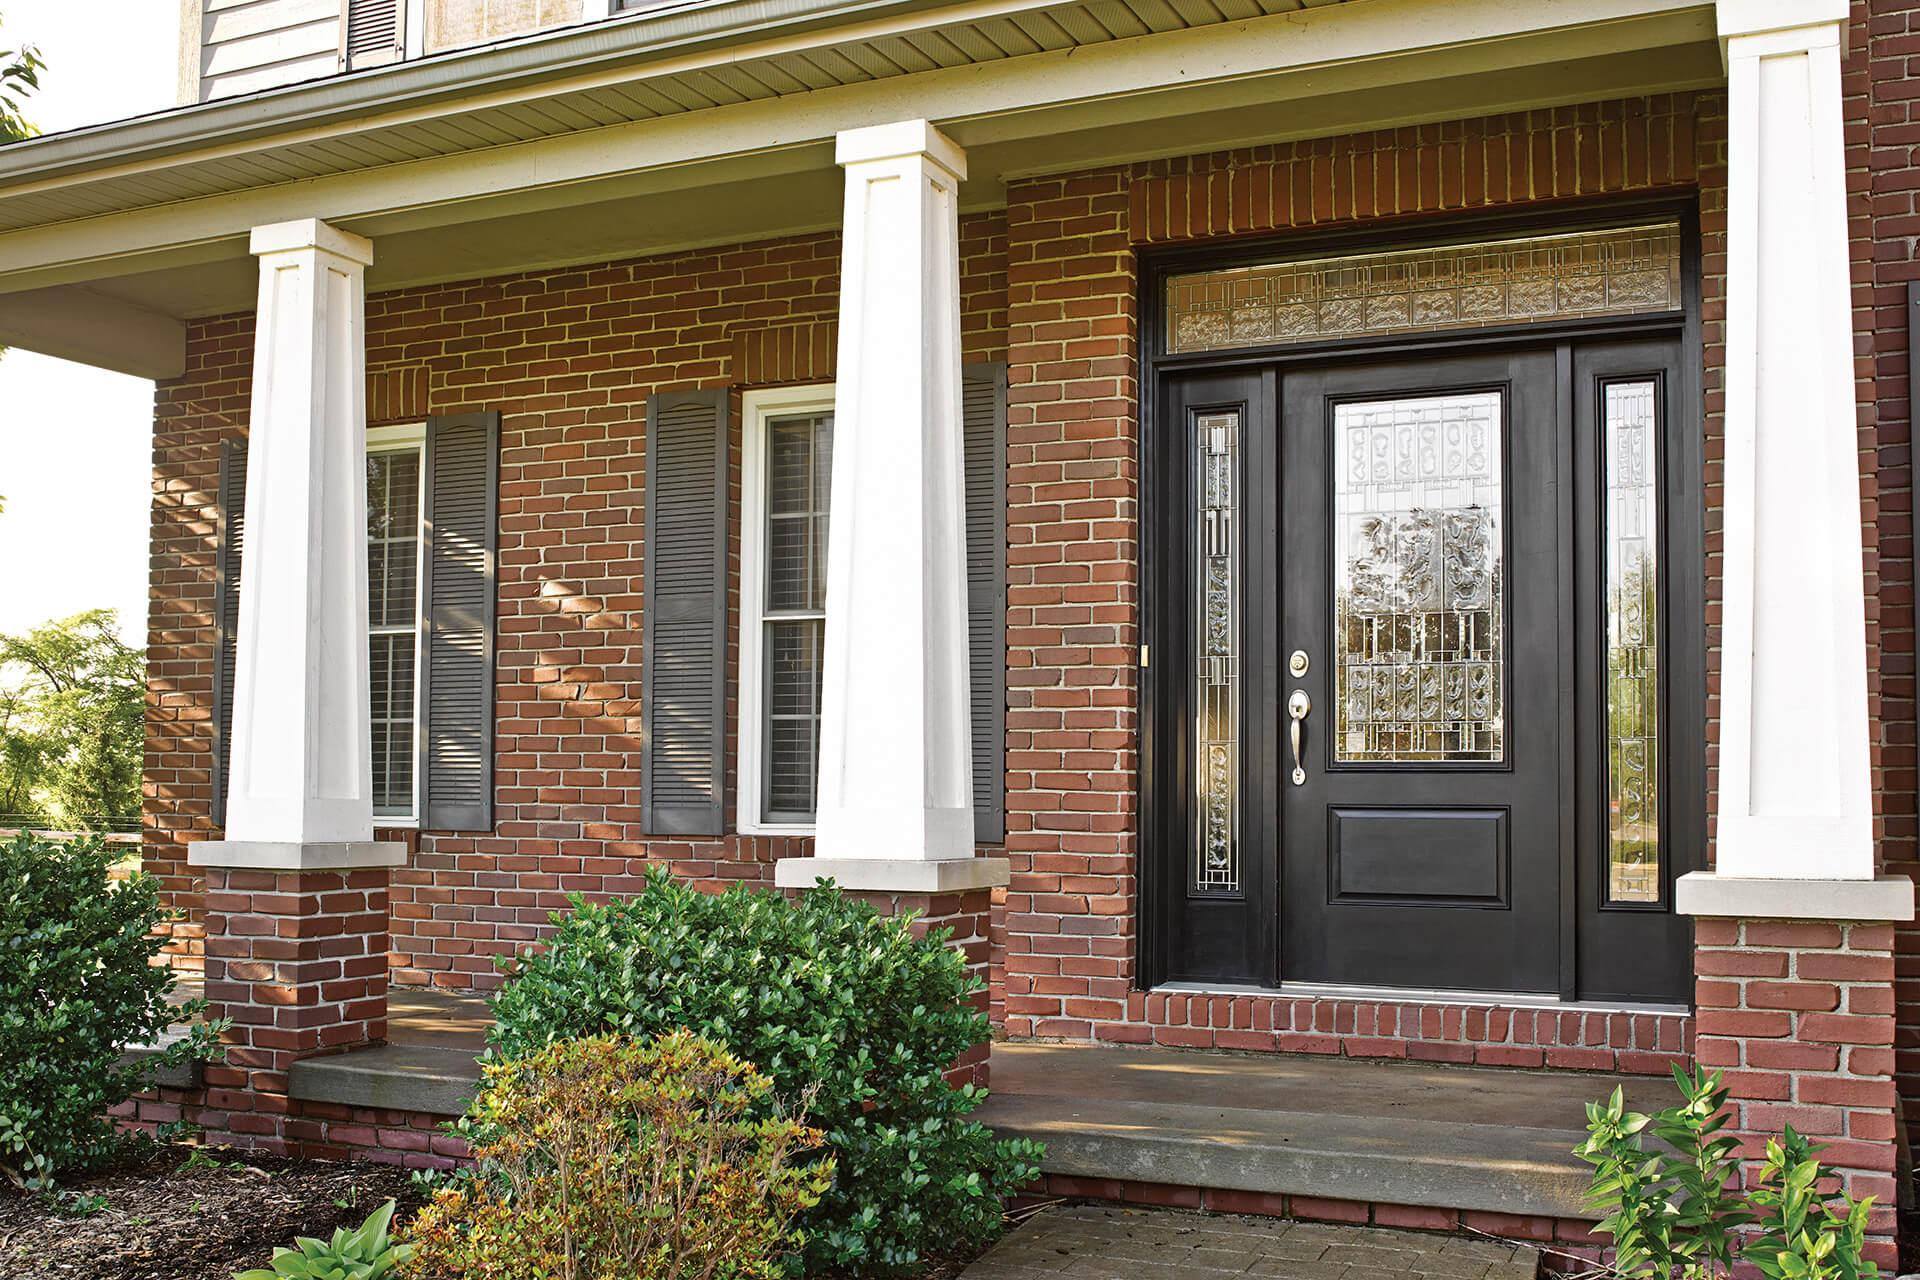 A brick home with columns and an exterior door features decorative glass